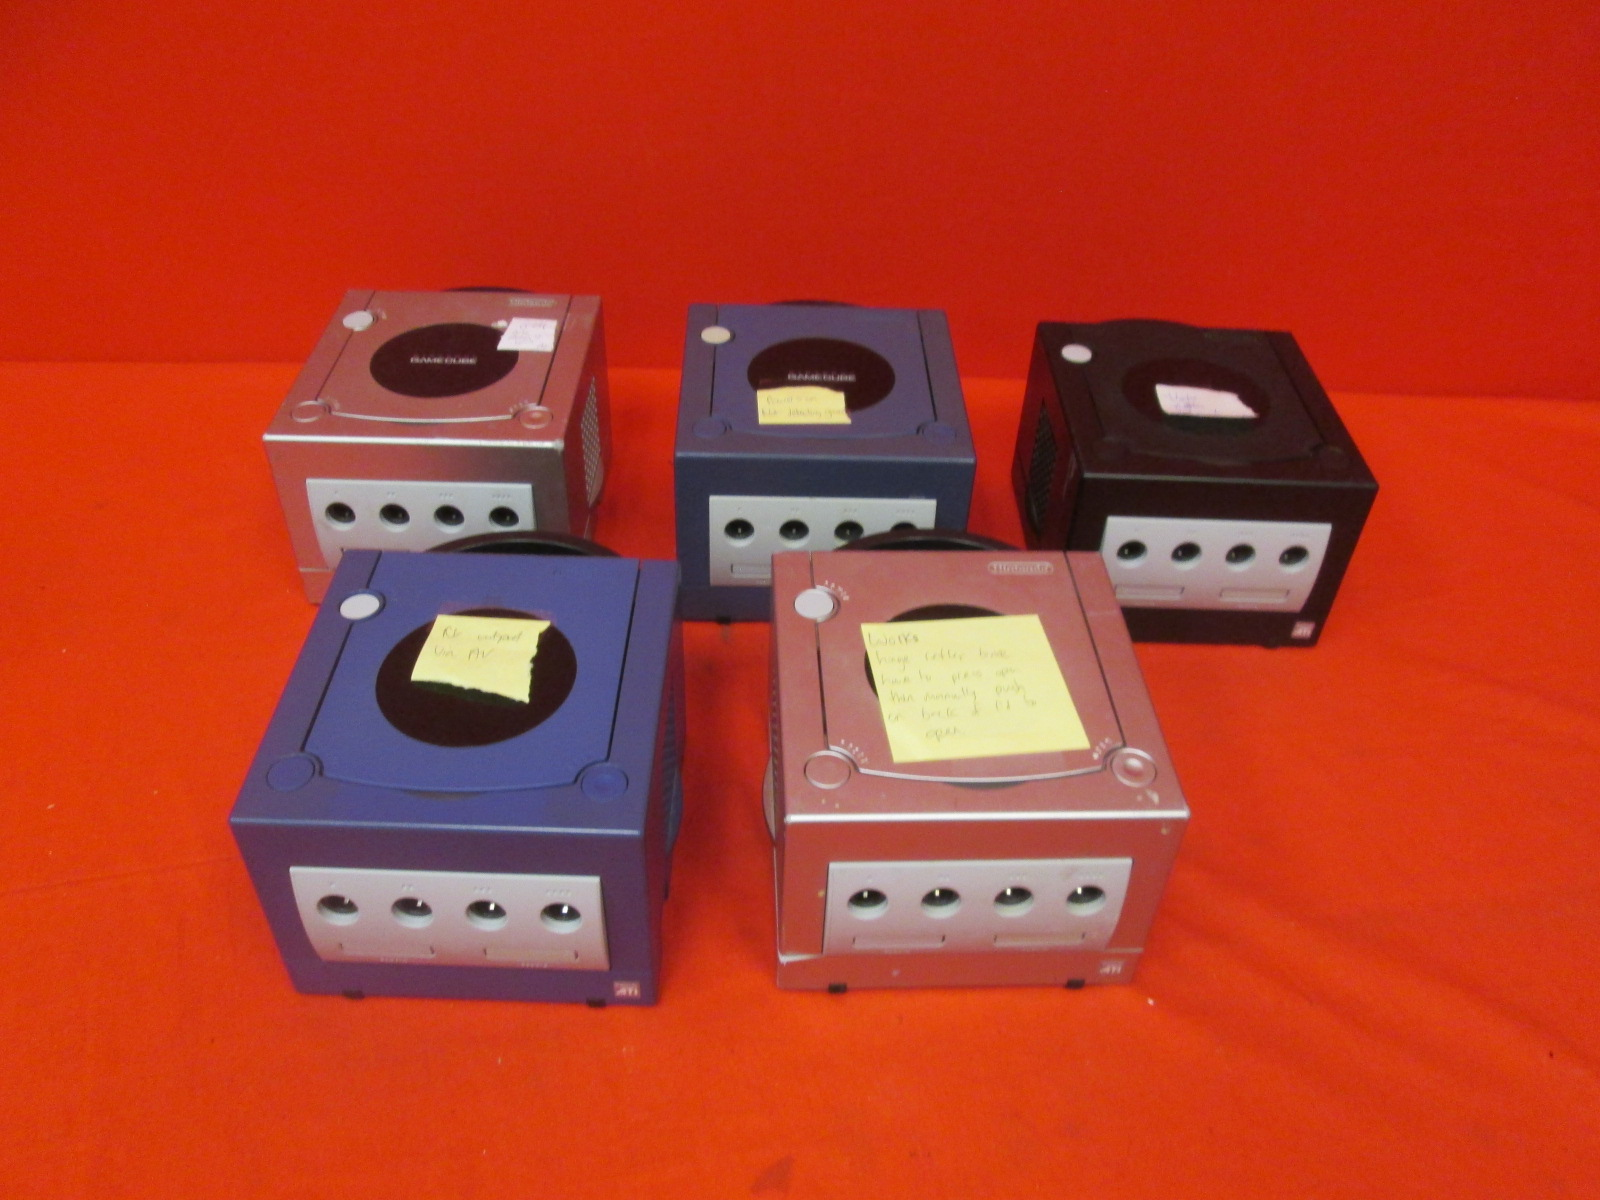 Broken Lot Of 5 Nintendo GameCube Video Game Consoles Only